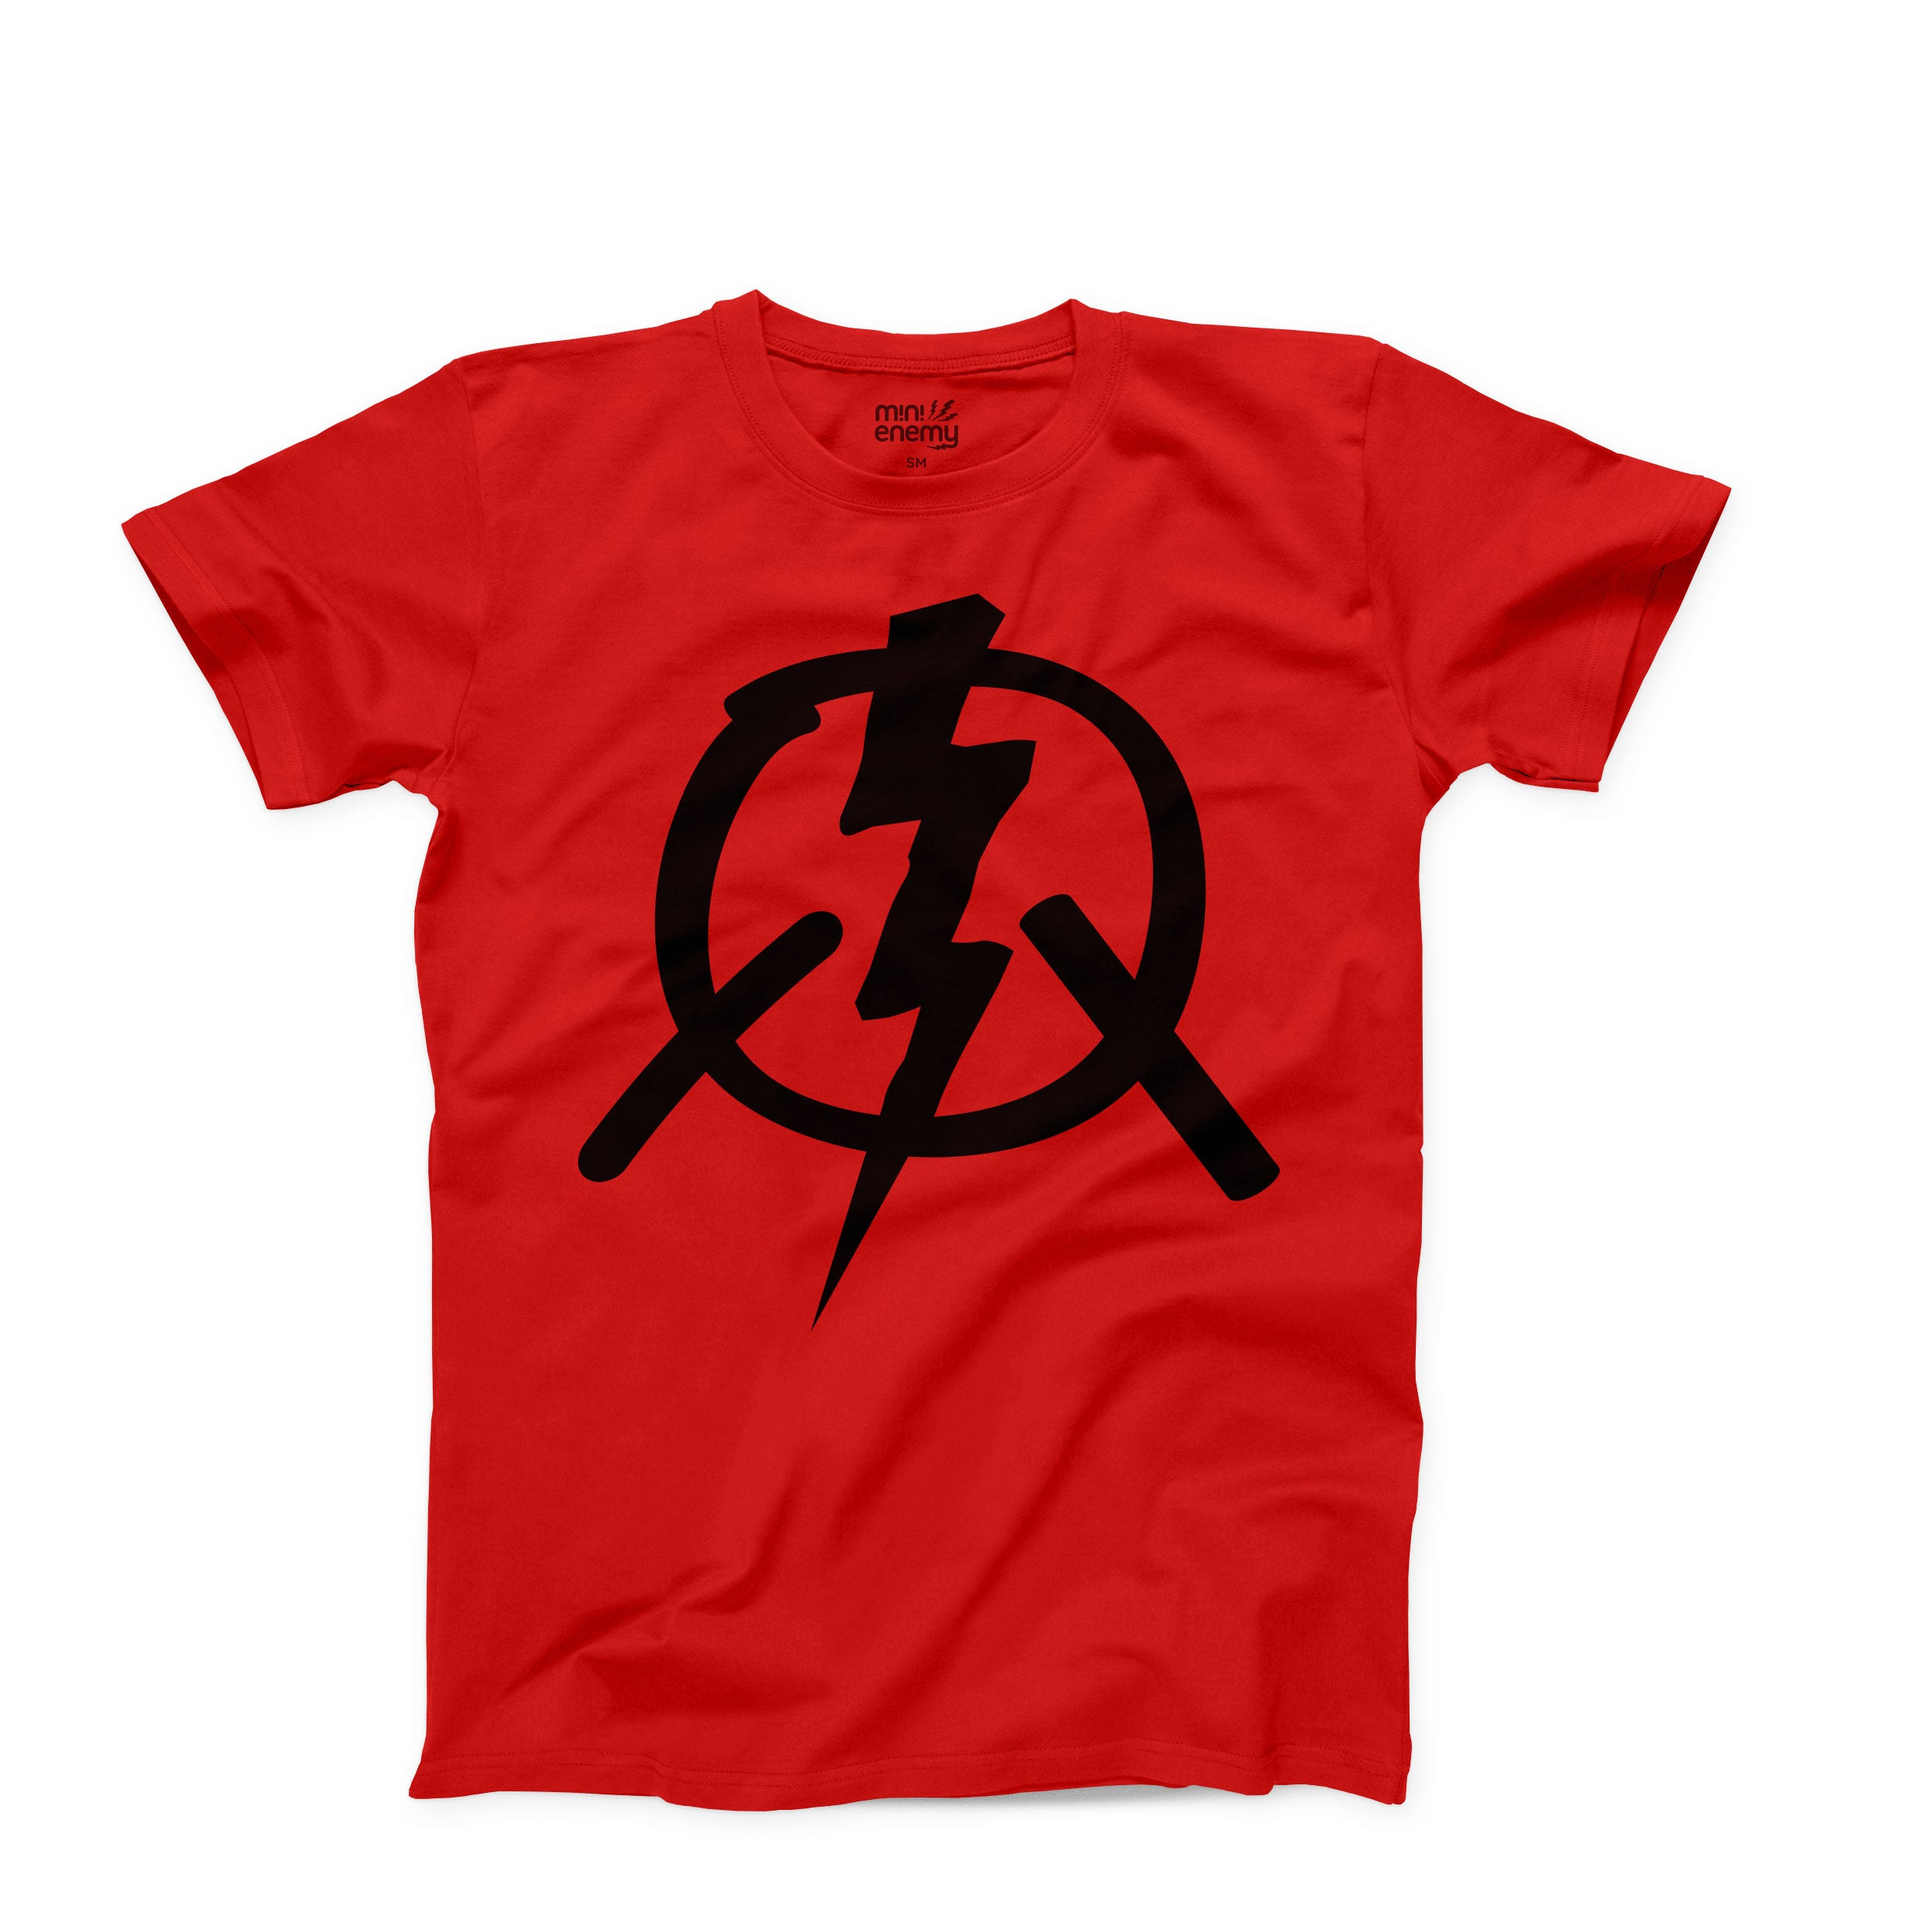 "Mini Enemy ""PEACE"" kids shirt"